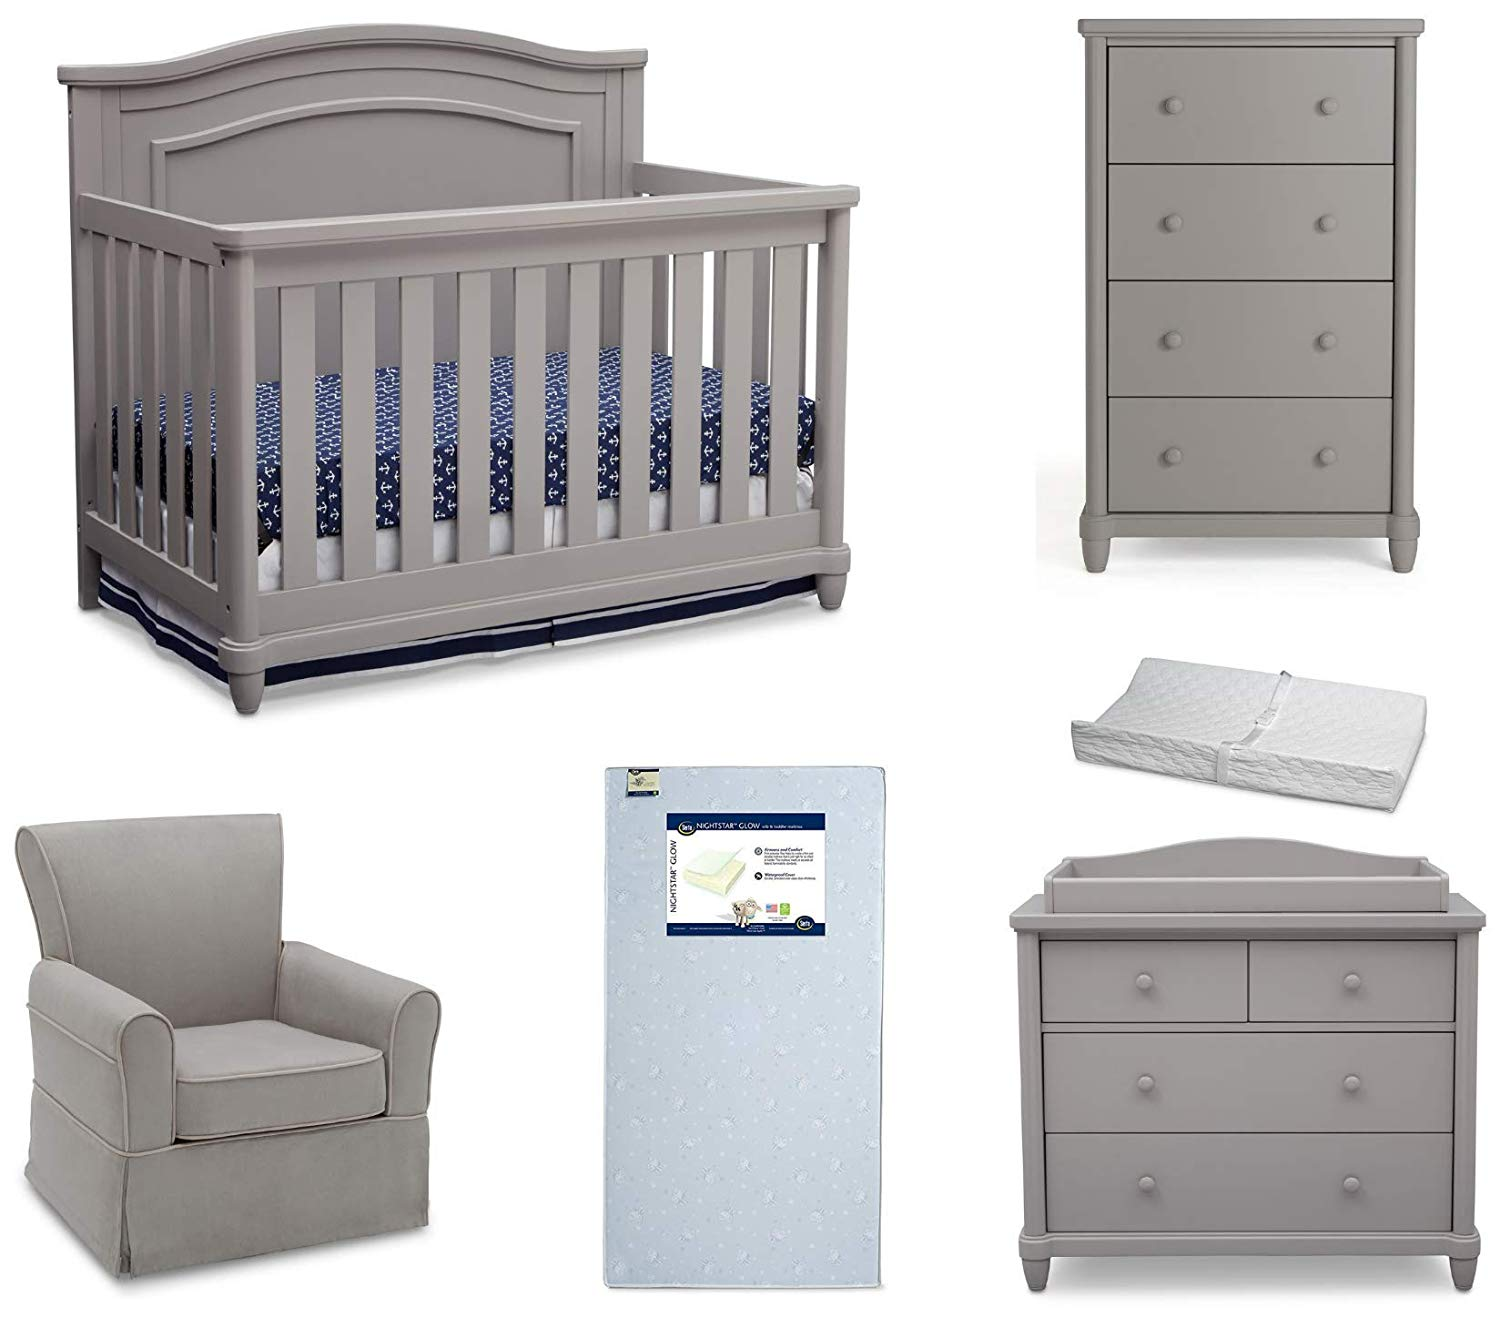 Best Baby Crib And Accessories Guide